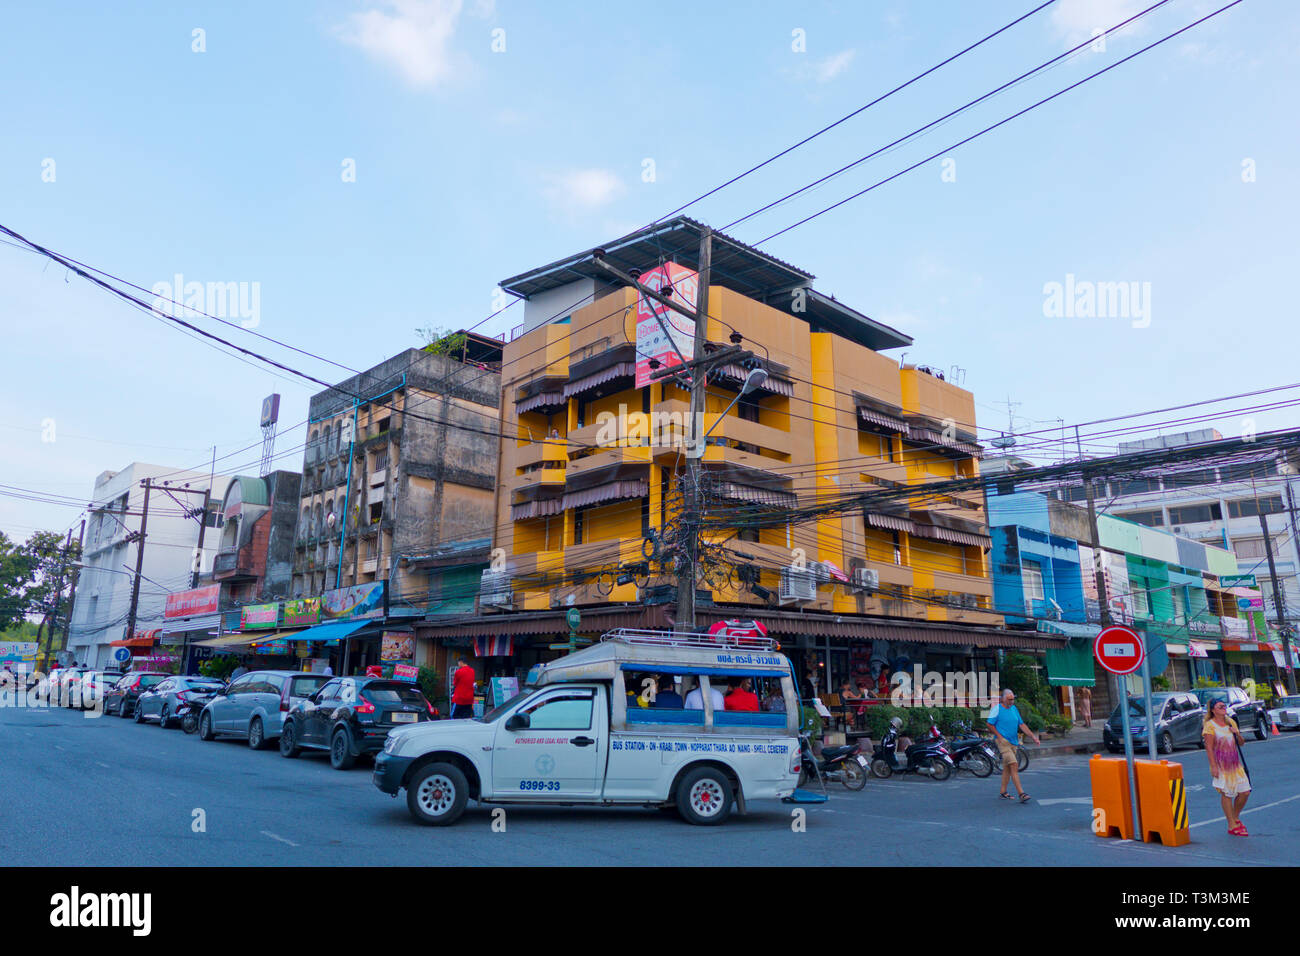 Songthaew, share bus going to bus station, Ao Nang and other places, Krabi town, Thailand - Stock Image